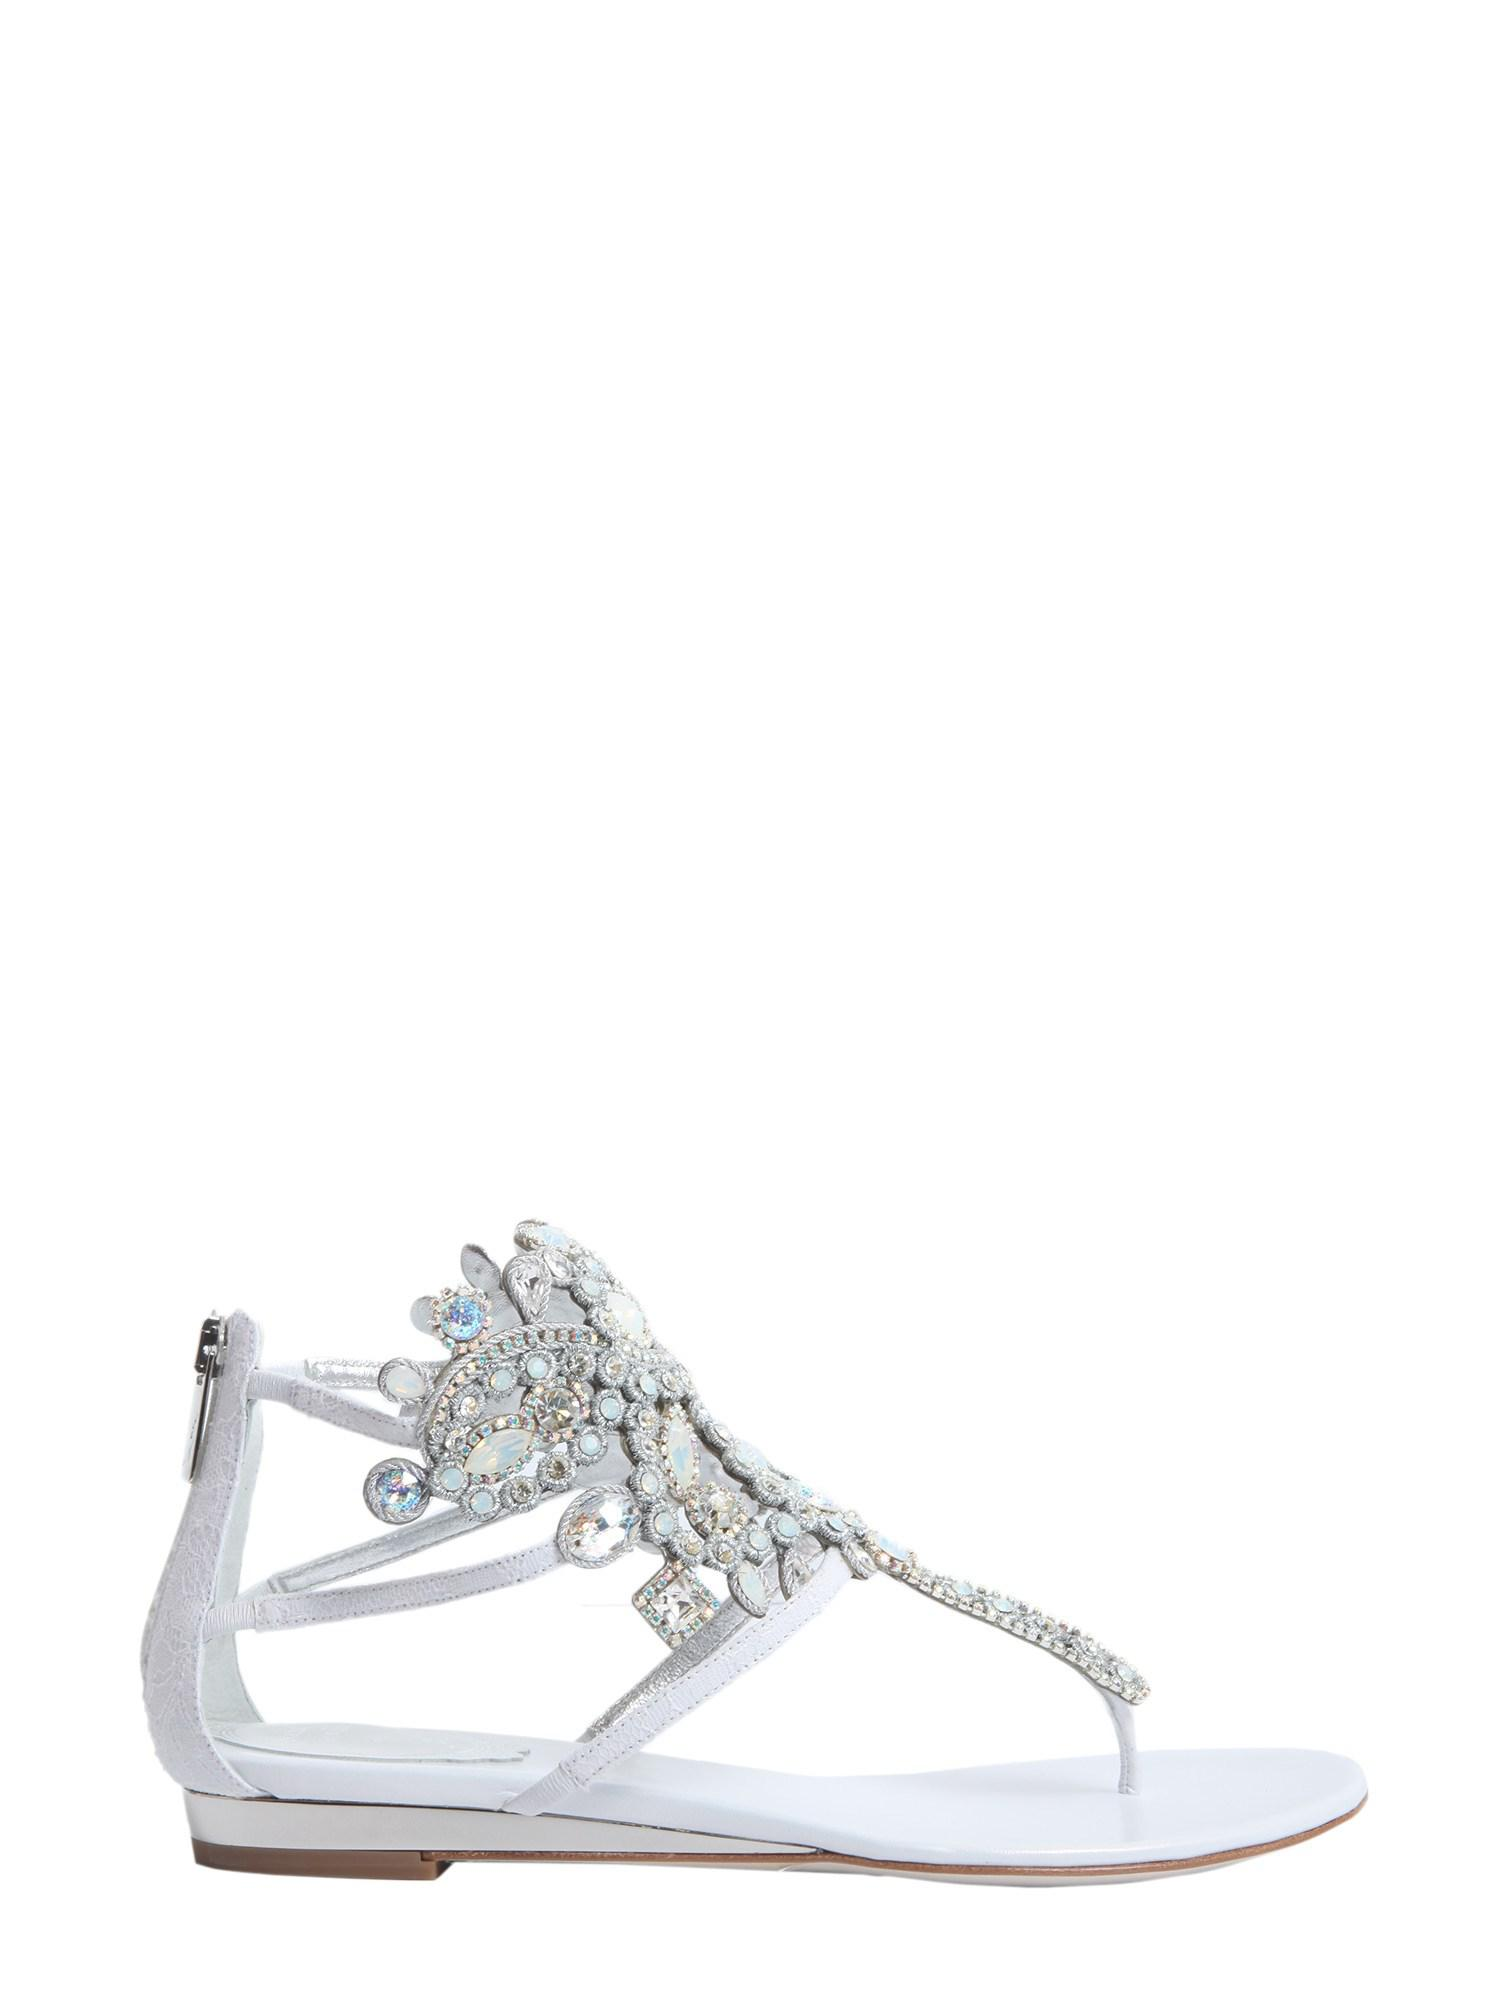 f64d77b57cc Lyst - Rene Caovilla Crystal Embellished Leather Flips in White